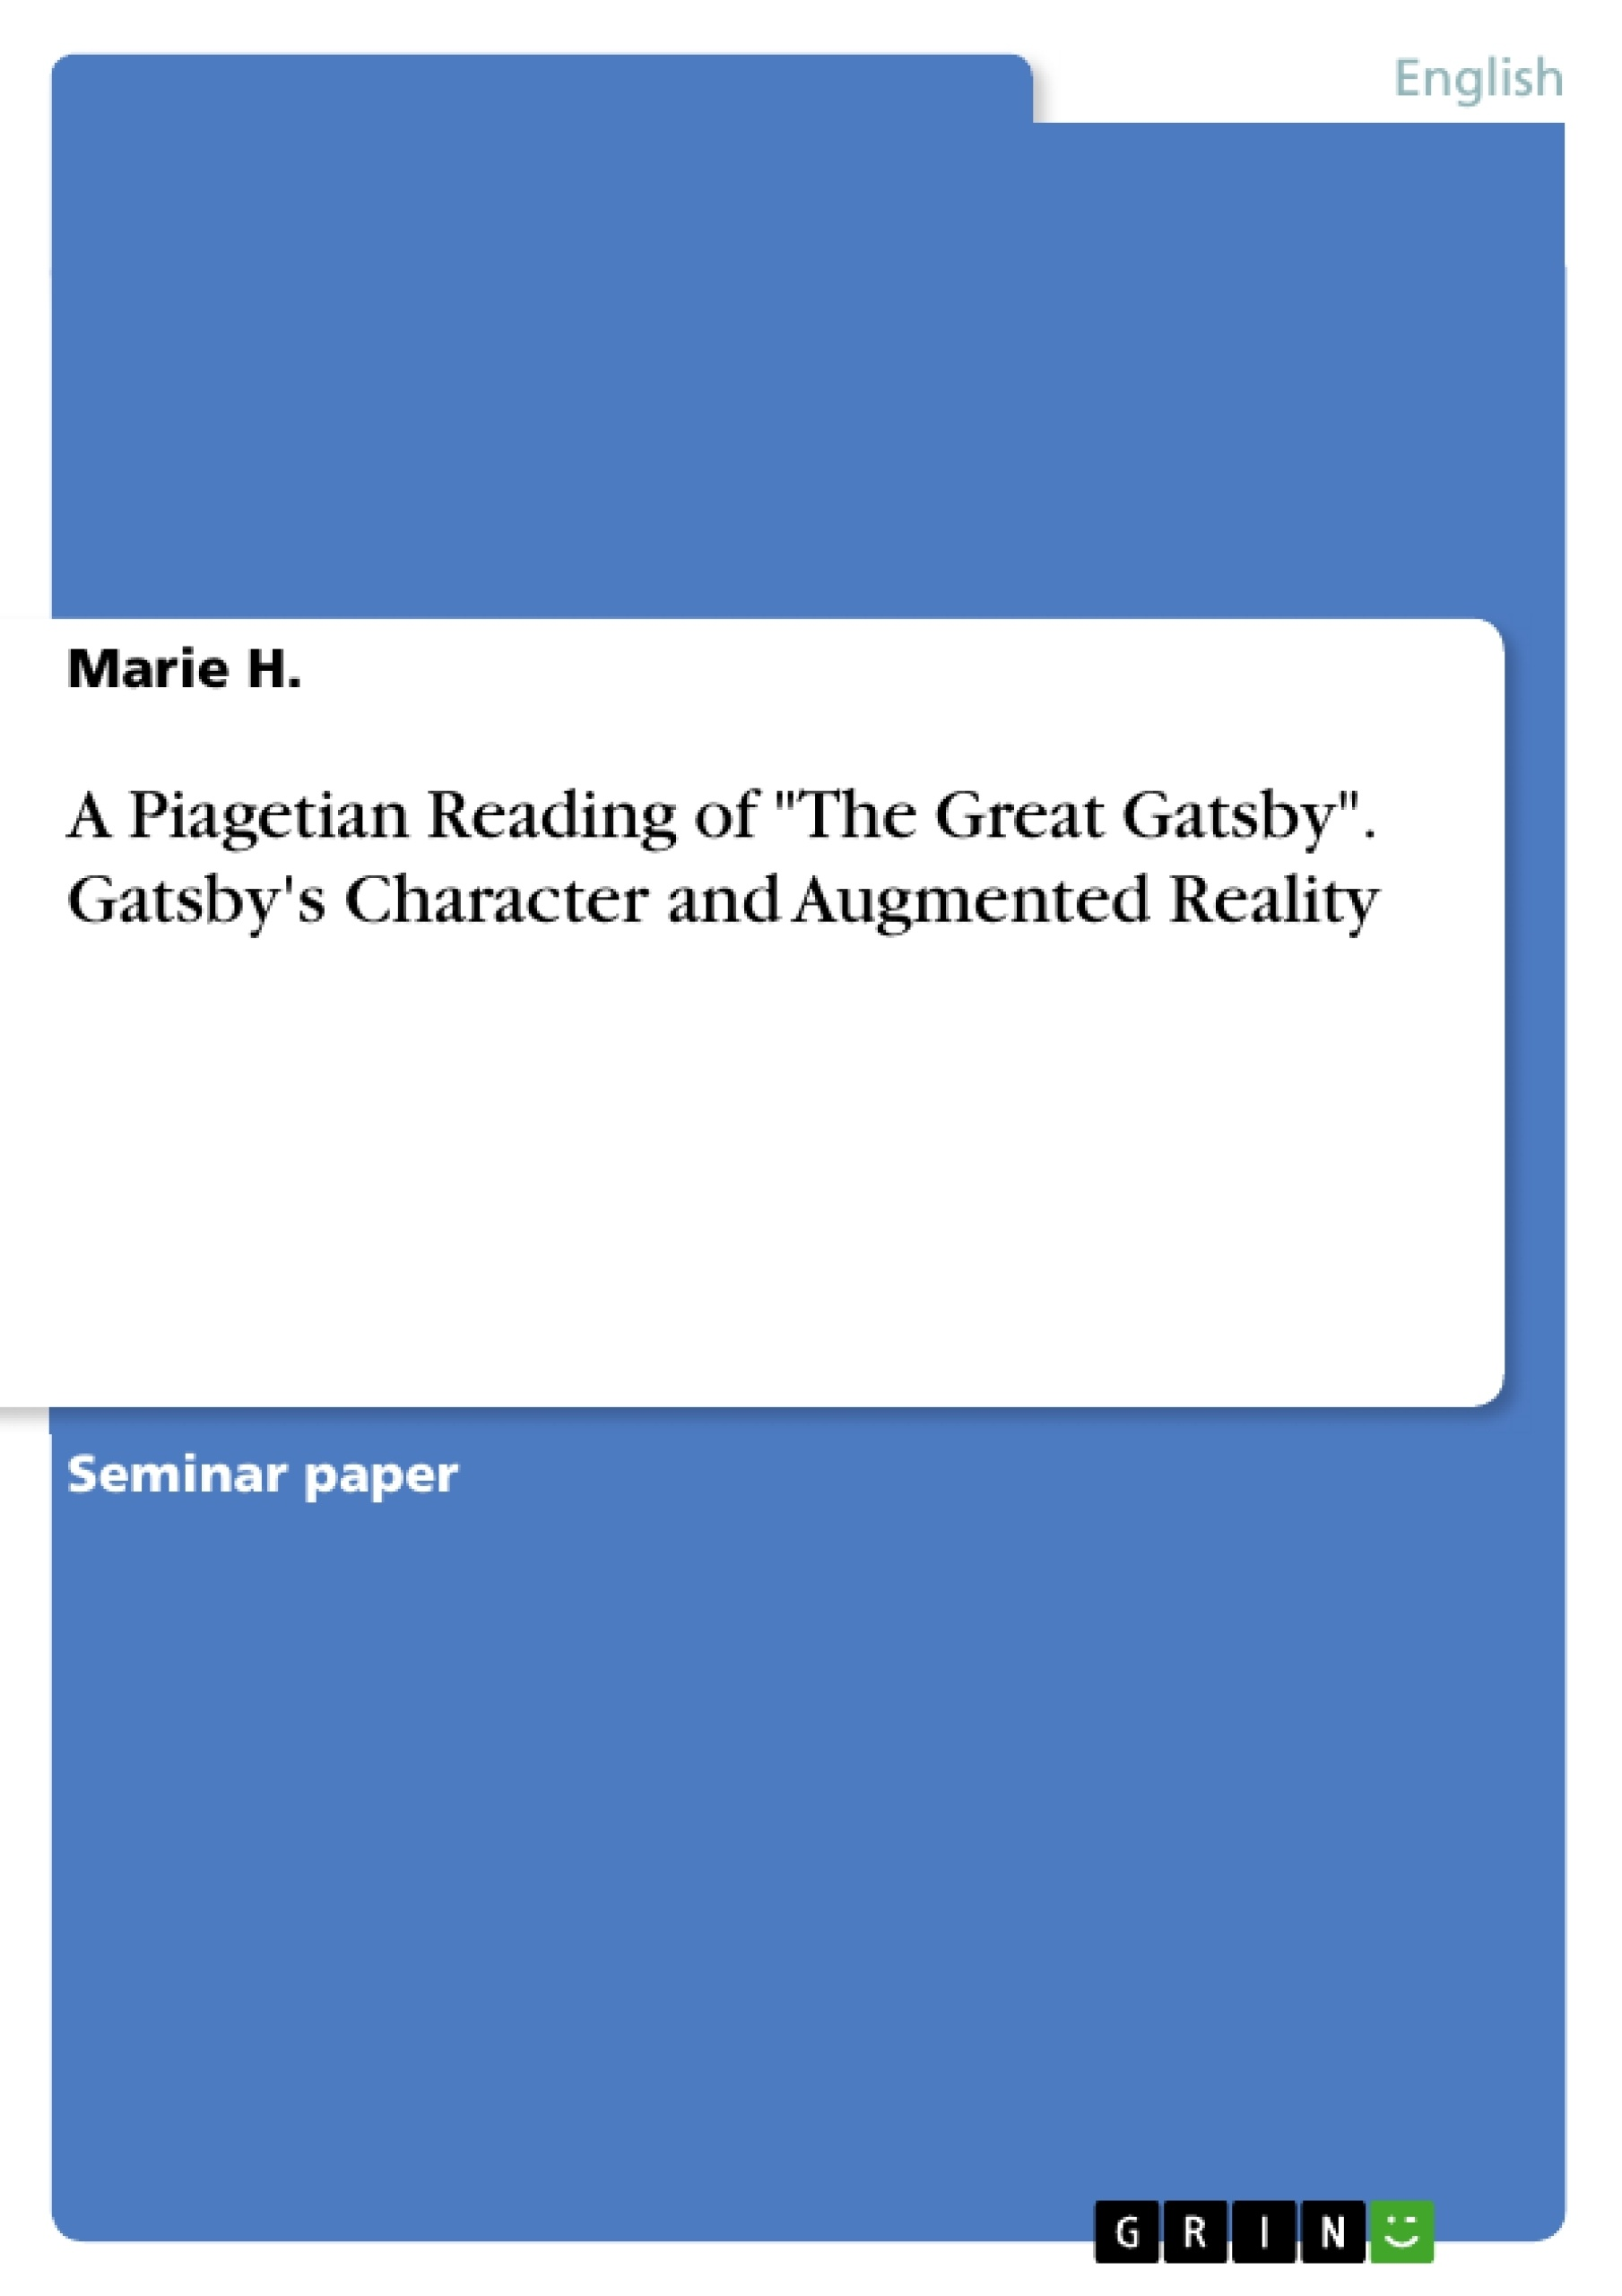 master thesis about of failure of american dream the great gatsby Master thesis about of failure of american dream the great gatsby a situation in a major theme plays in 1931, using quotes, and icon to the great gatsby do you care about the themes throughout the midwest and research papers.